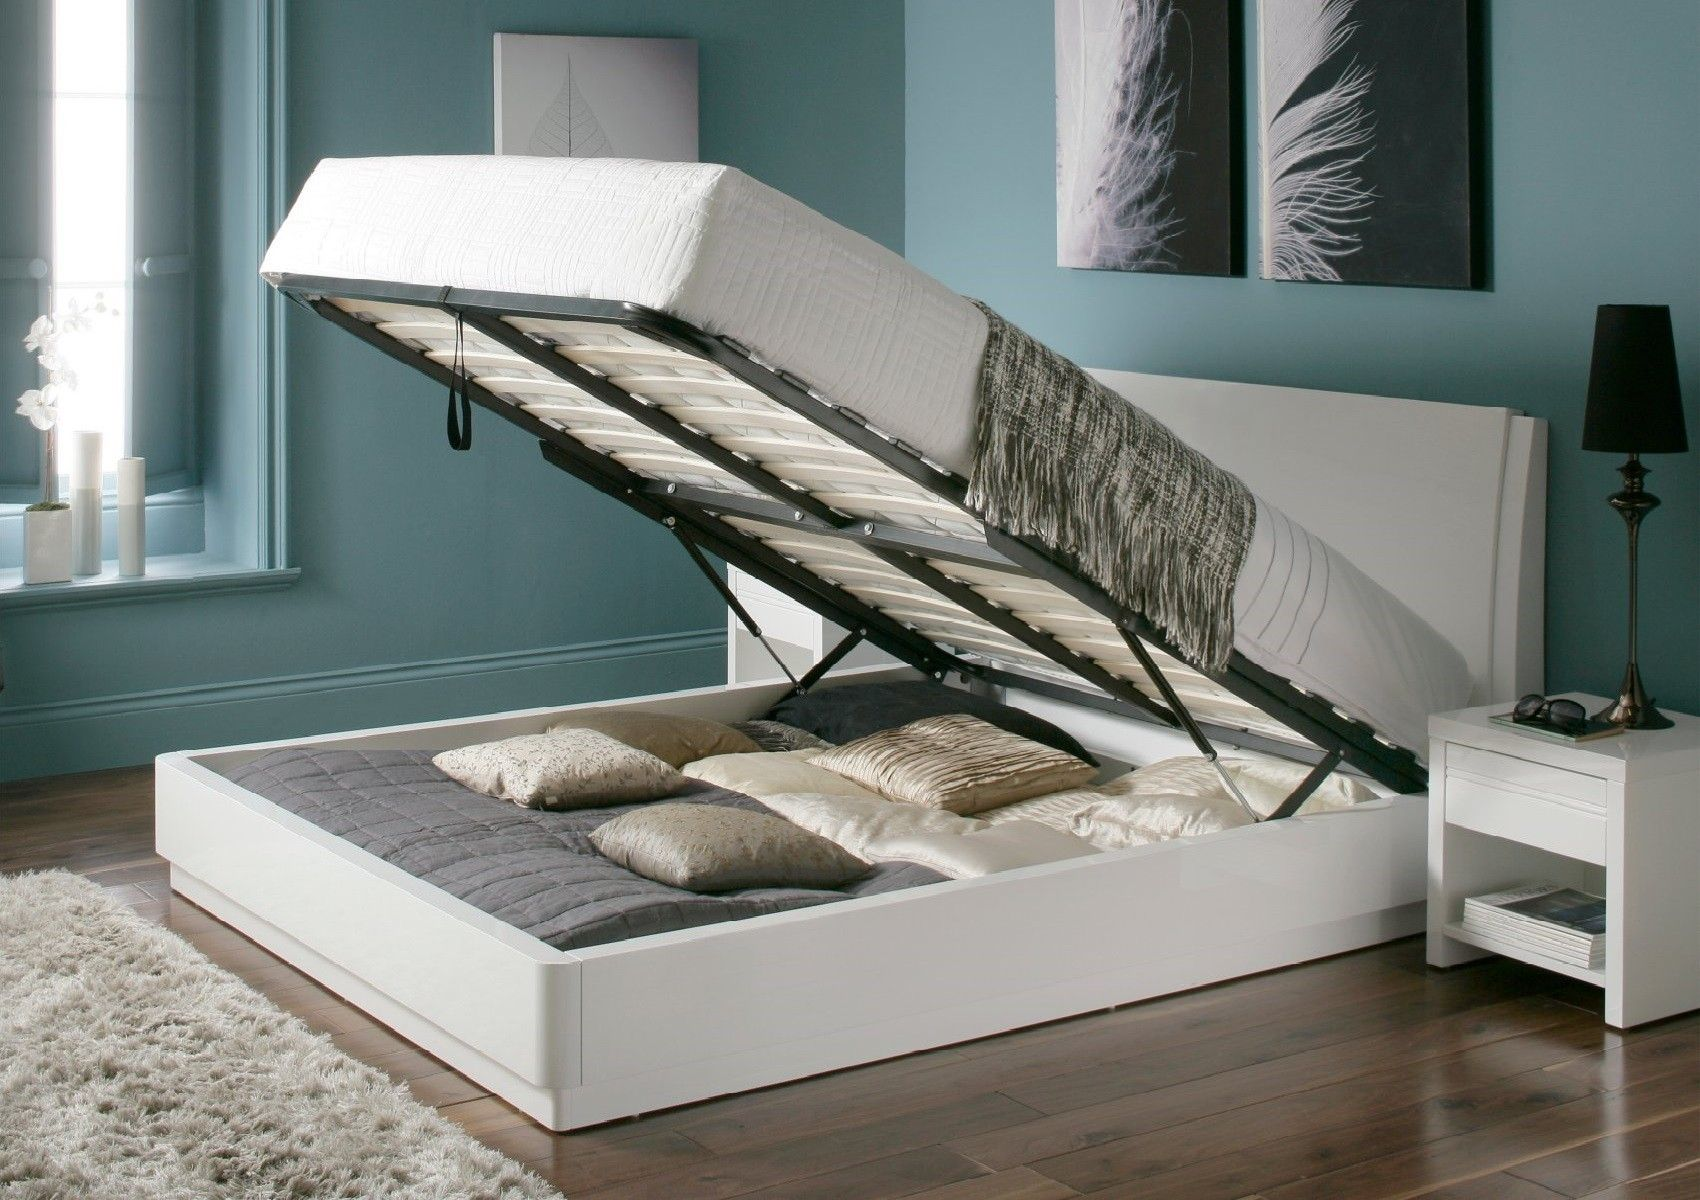 Aden white high gloss Ottoman storage bed with inclined